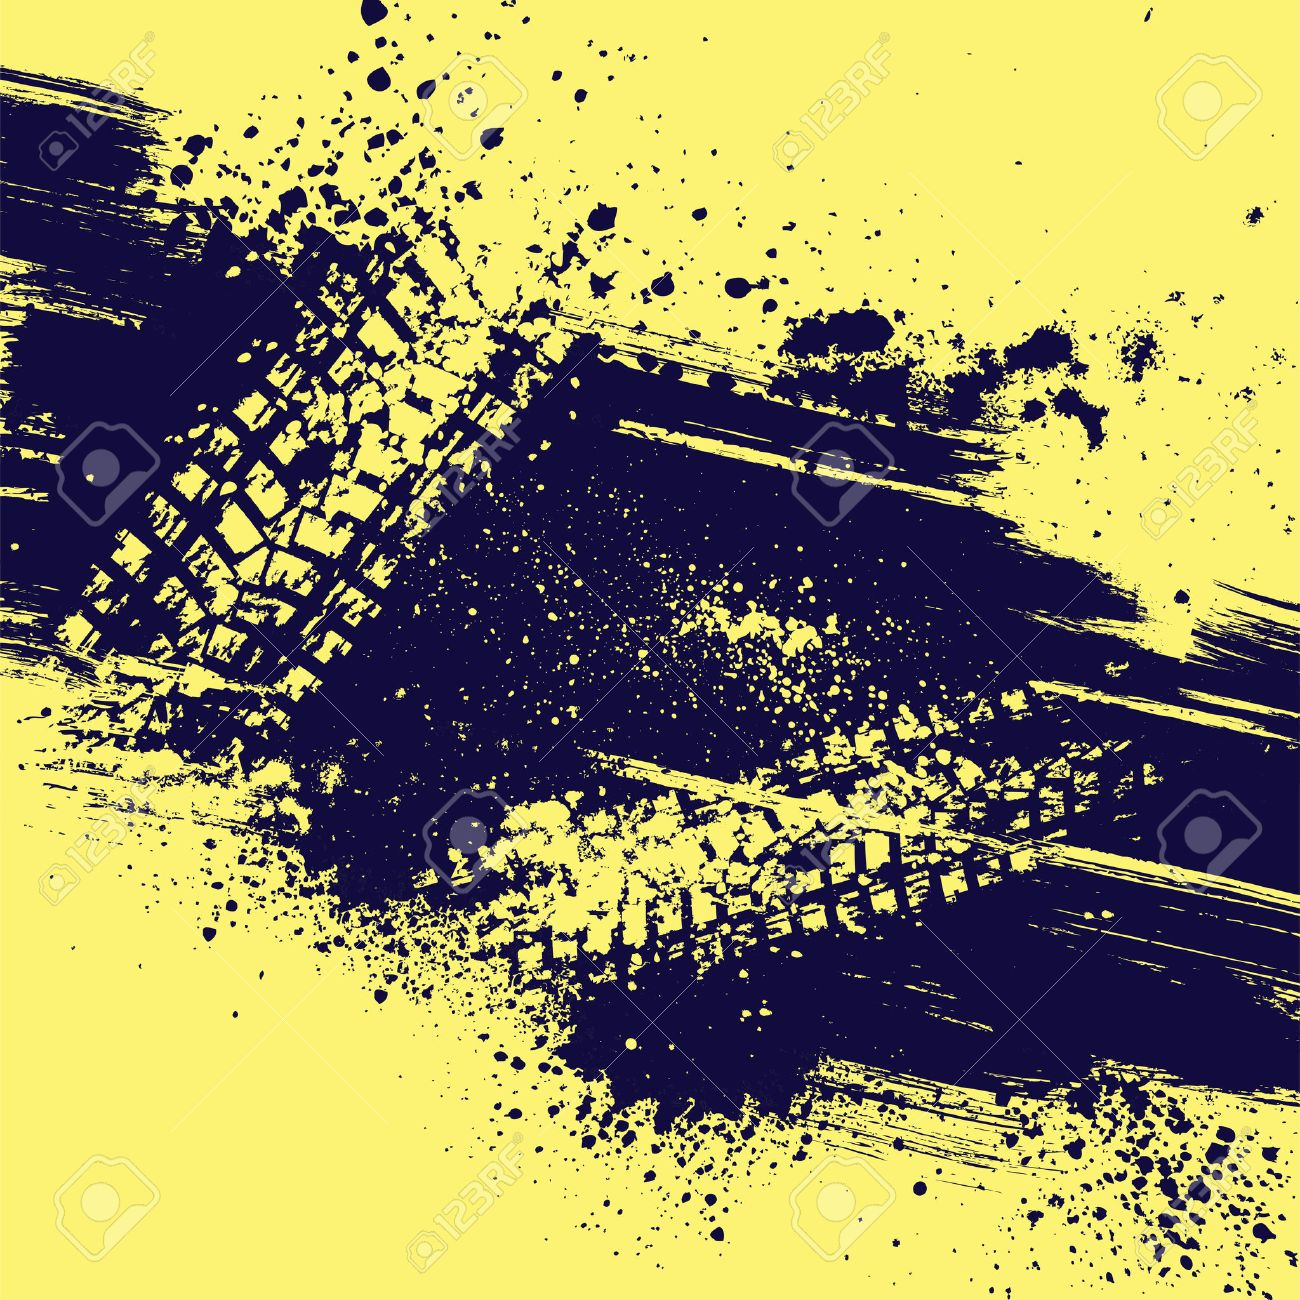 Yellow background with tire track and grunge splash. eps10 - 45501419